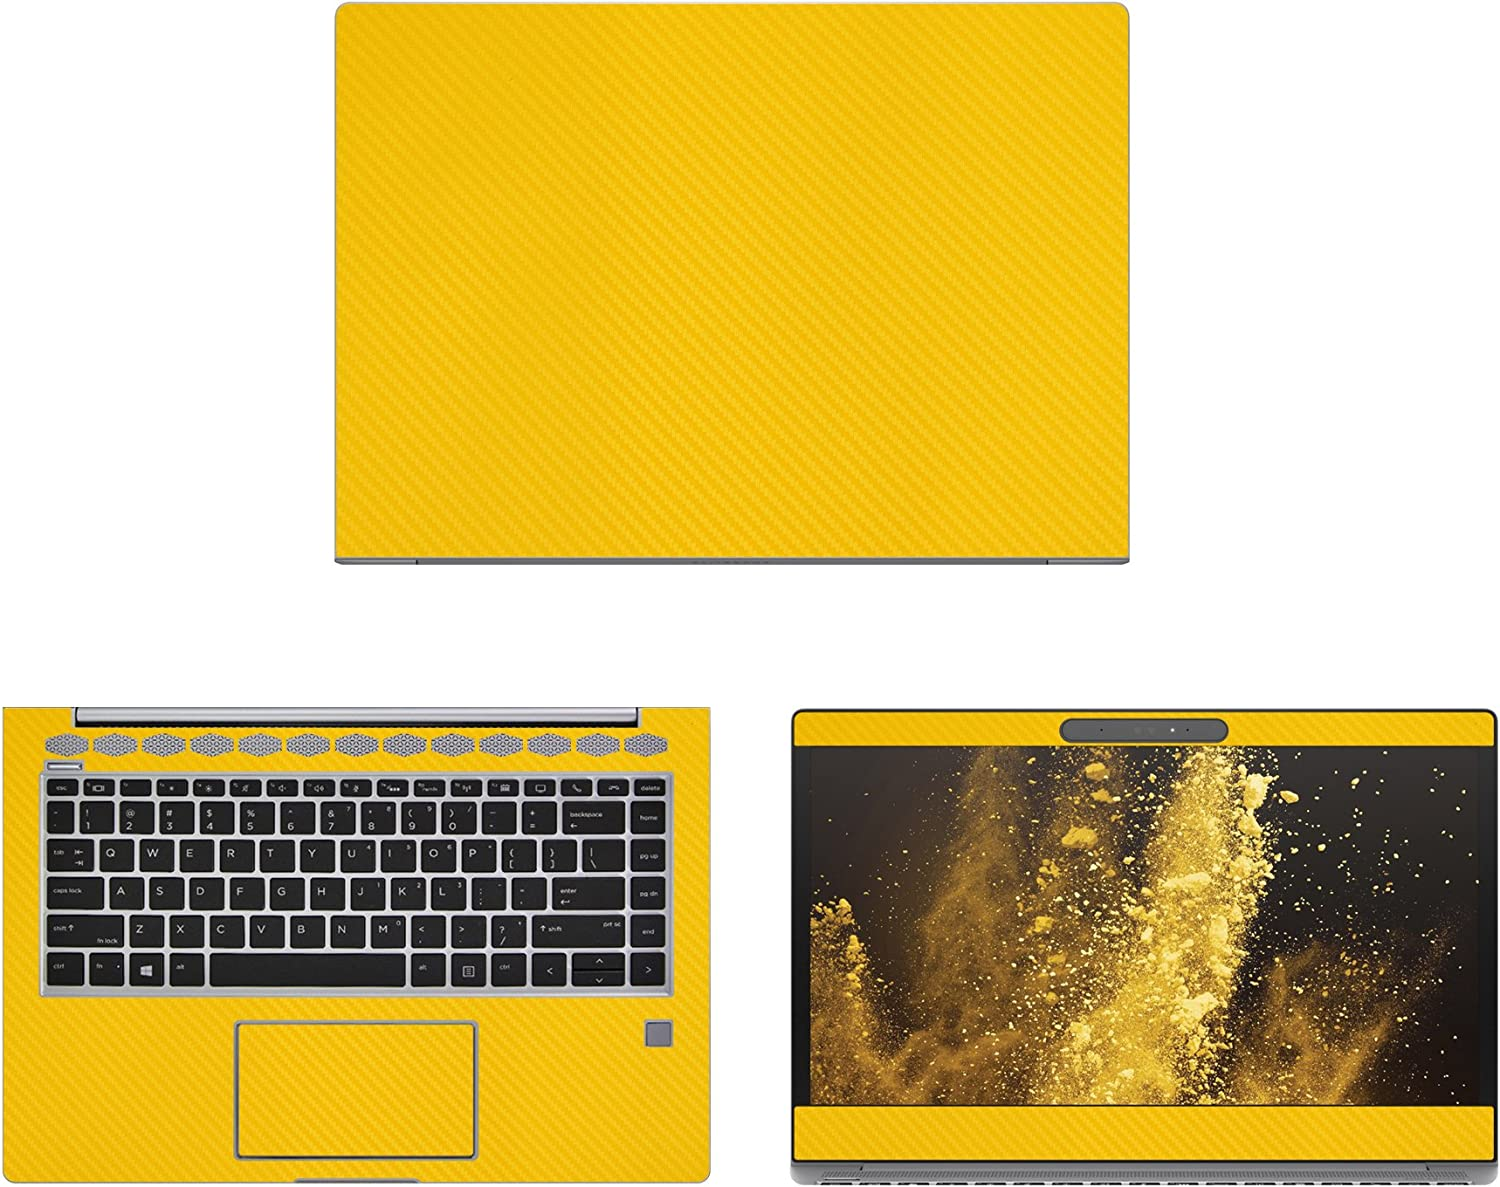 Amazon Com Decalrus Protective Decal For Hp Elitebook 1040 G4 14 Screen Laptop Yellow Carbon Fiber Skin Case Cover Wrap Cfhpelitebk1040g4yellow Electronics